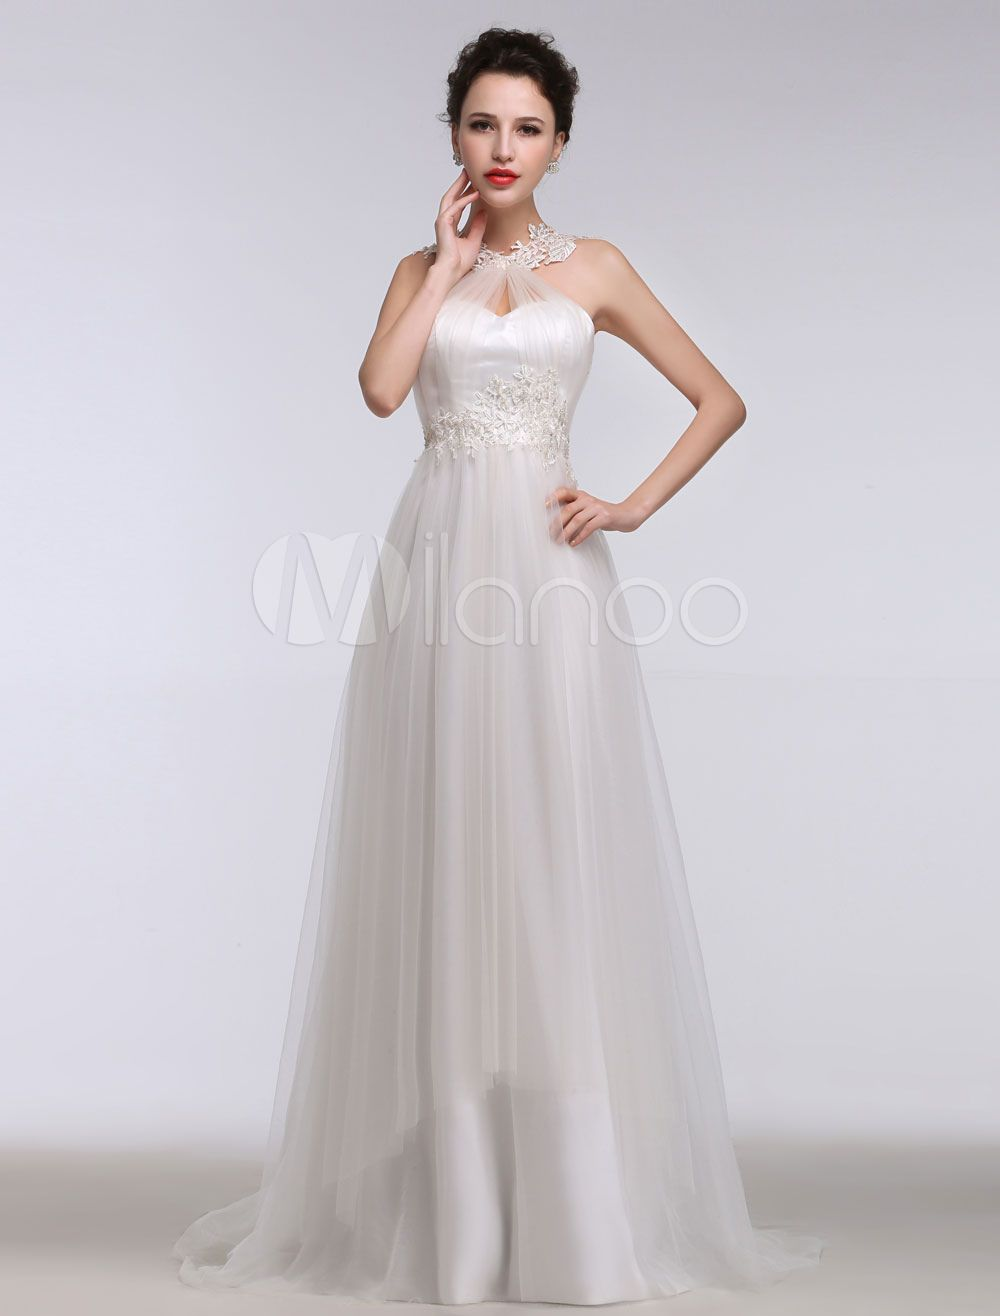 c142991a7f2 Lace Wedding Dress Halter Sweetheart A Line Beading Tulle Bridal Gown  Backless Lace Applique Court Train